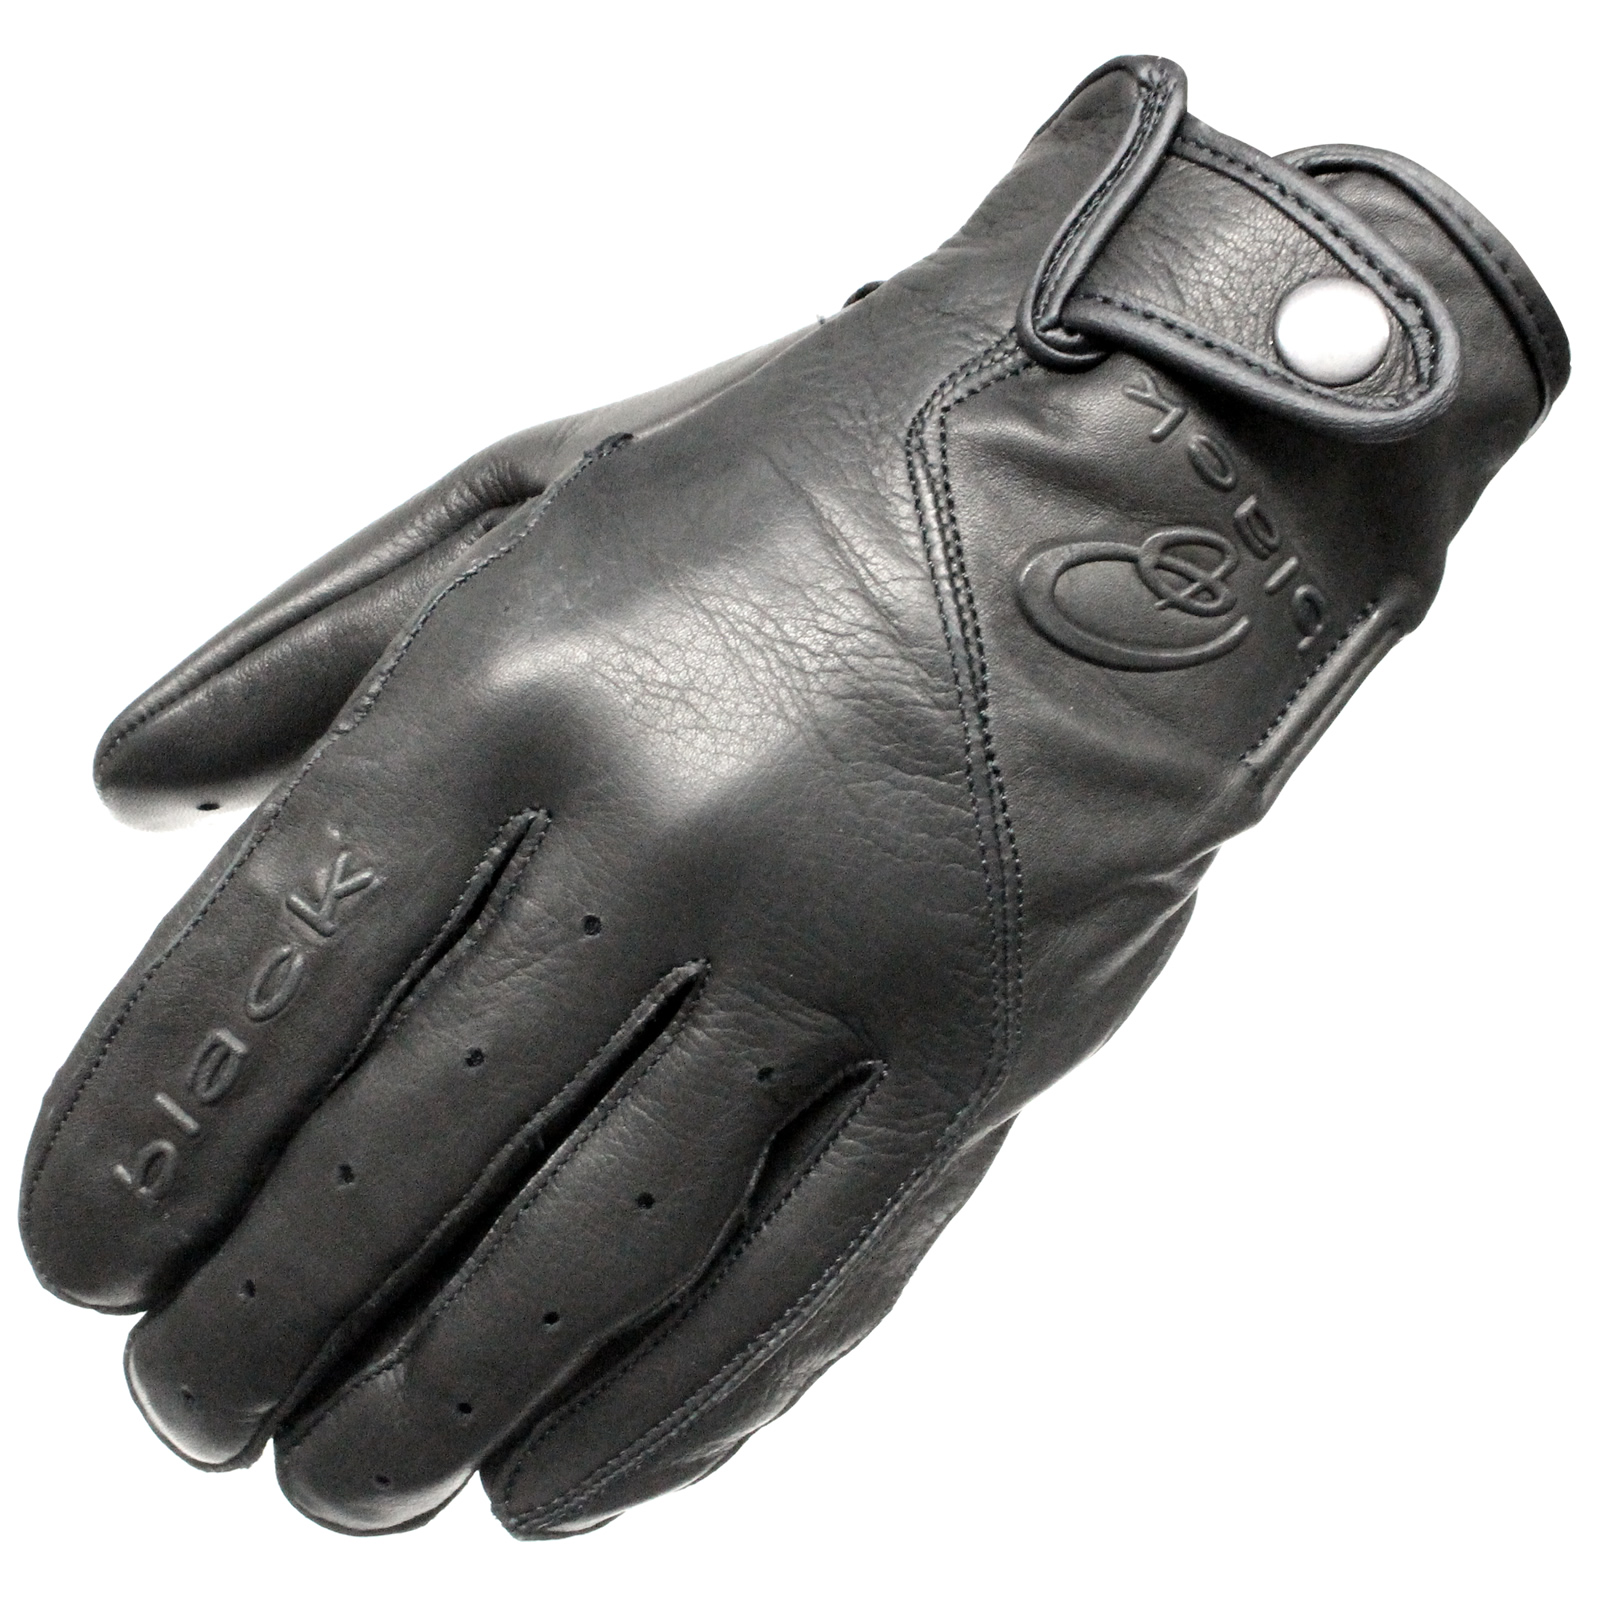 Buy leather motorcycle gloves - Black Static Leather Classic Vintage Fashion Motorcycle Motorbike Bike Gloves